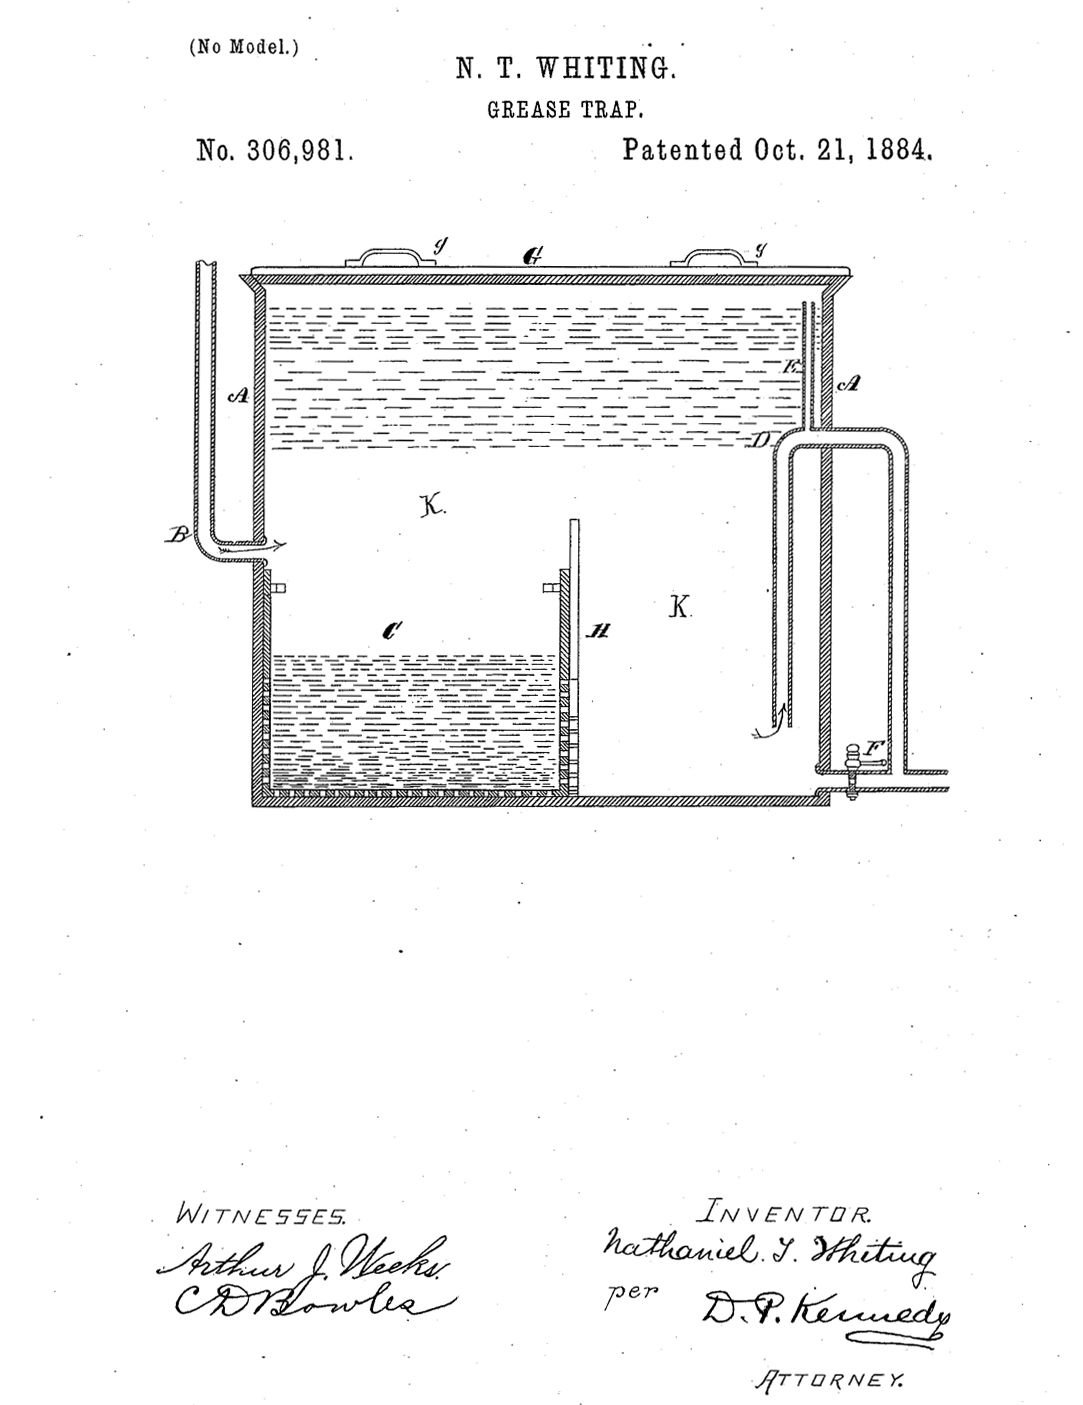 N T Whiting illustration of grease trap.